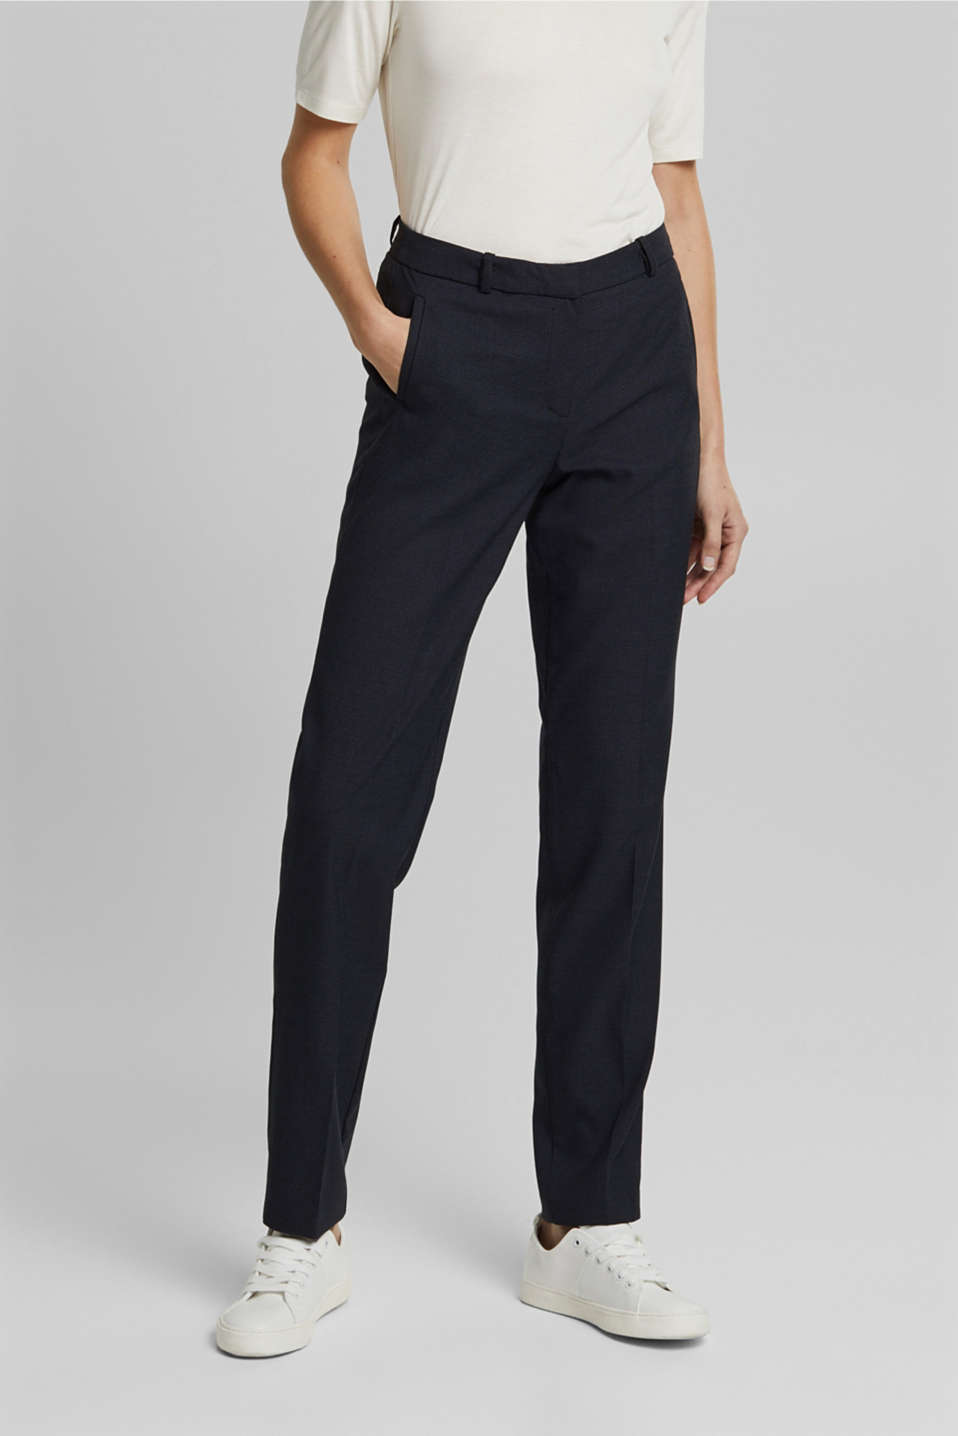 Esprit - STRUCTURE Mix + Match Stretch Trousers